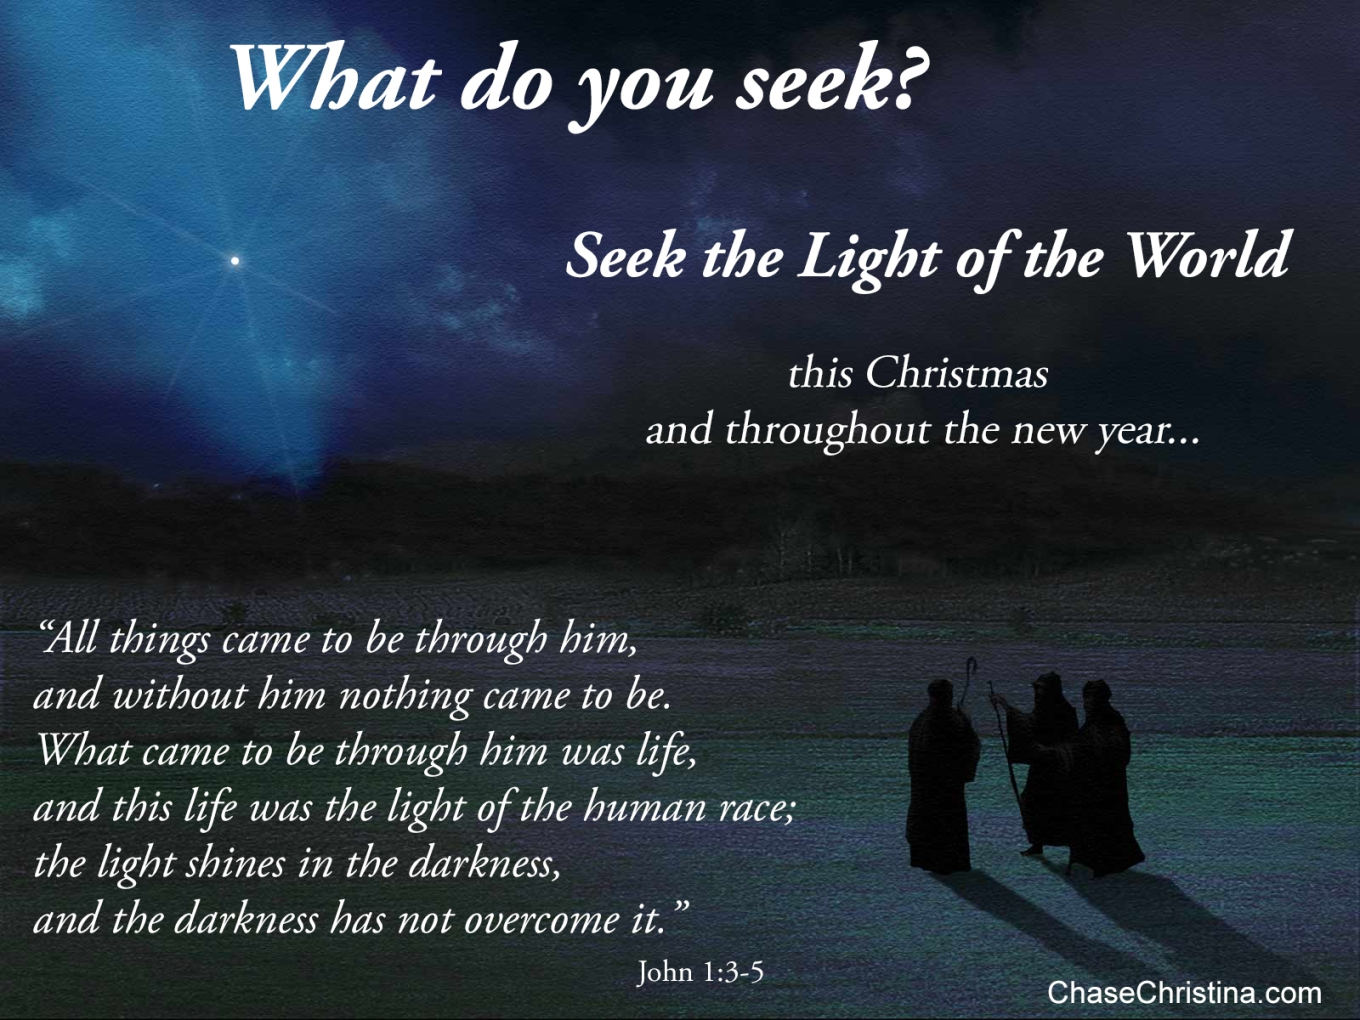 light of the world, wisemen, Christ